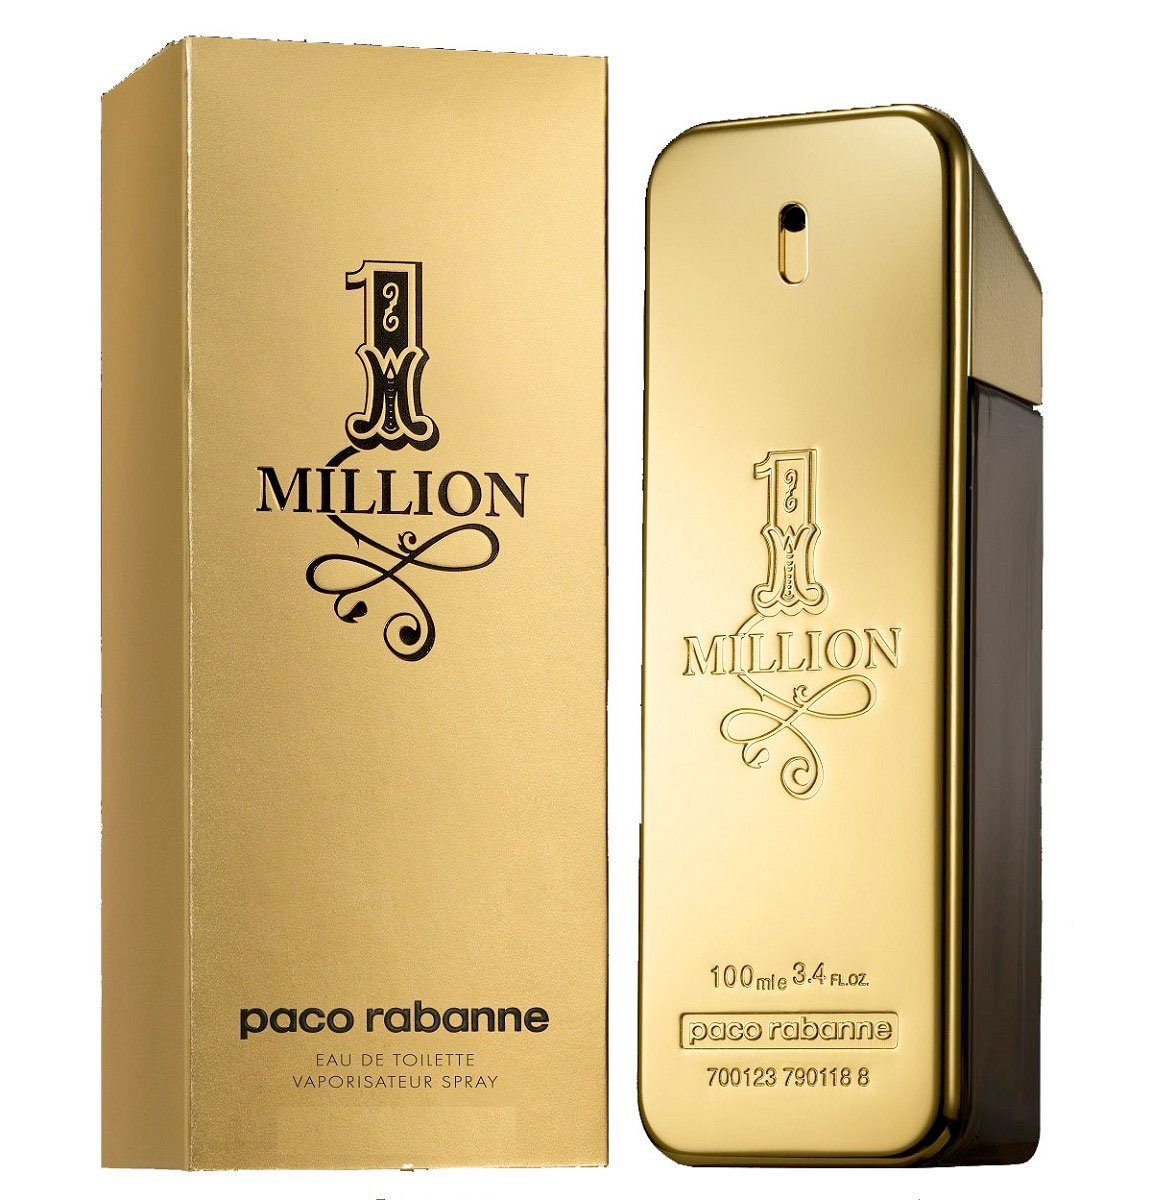 1 Million Paco Rabanne 3.4 oz EDT Image